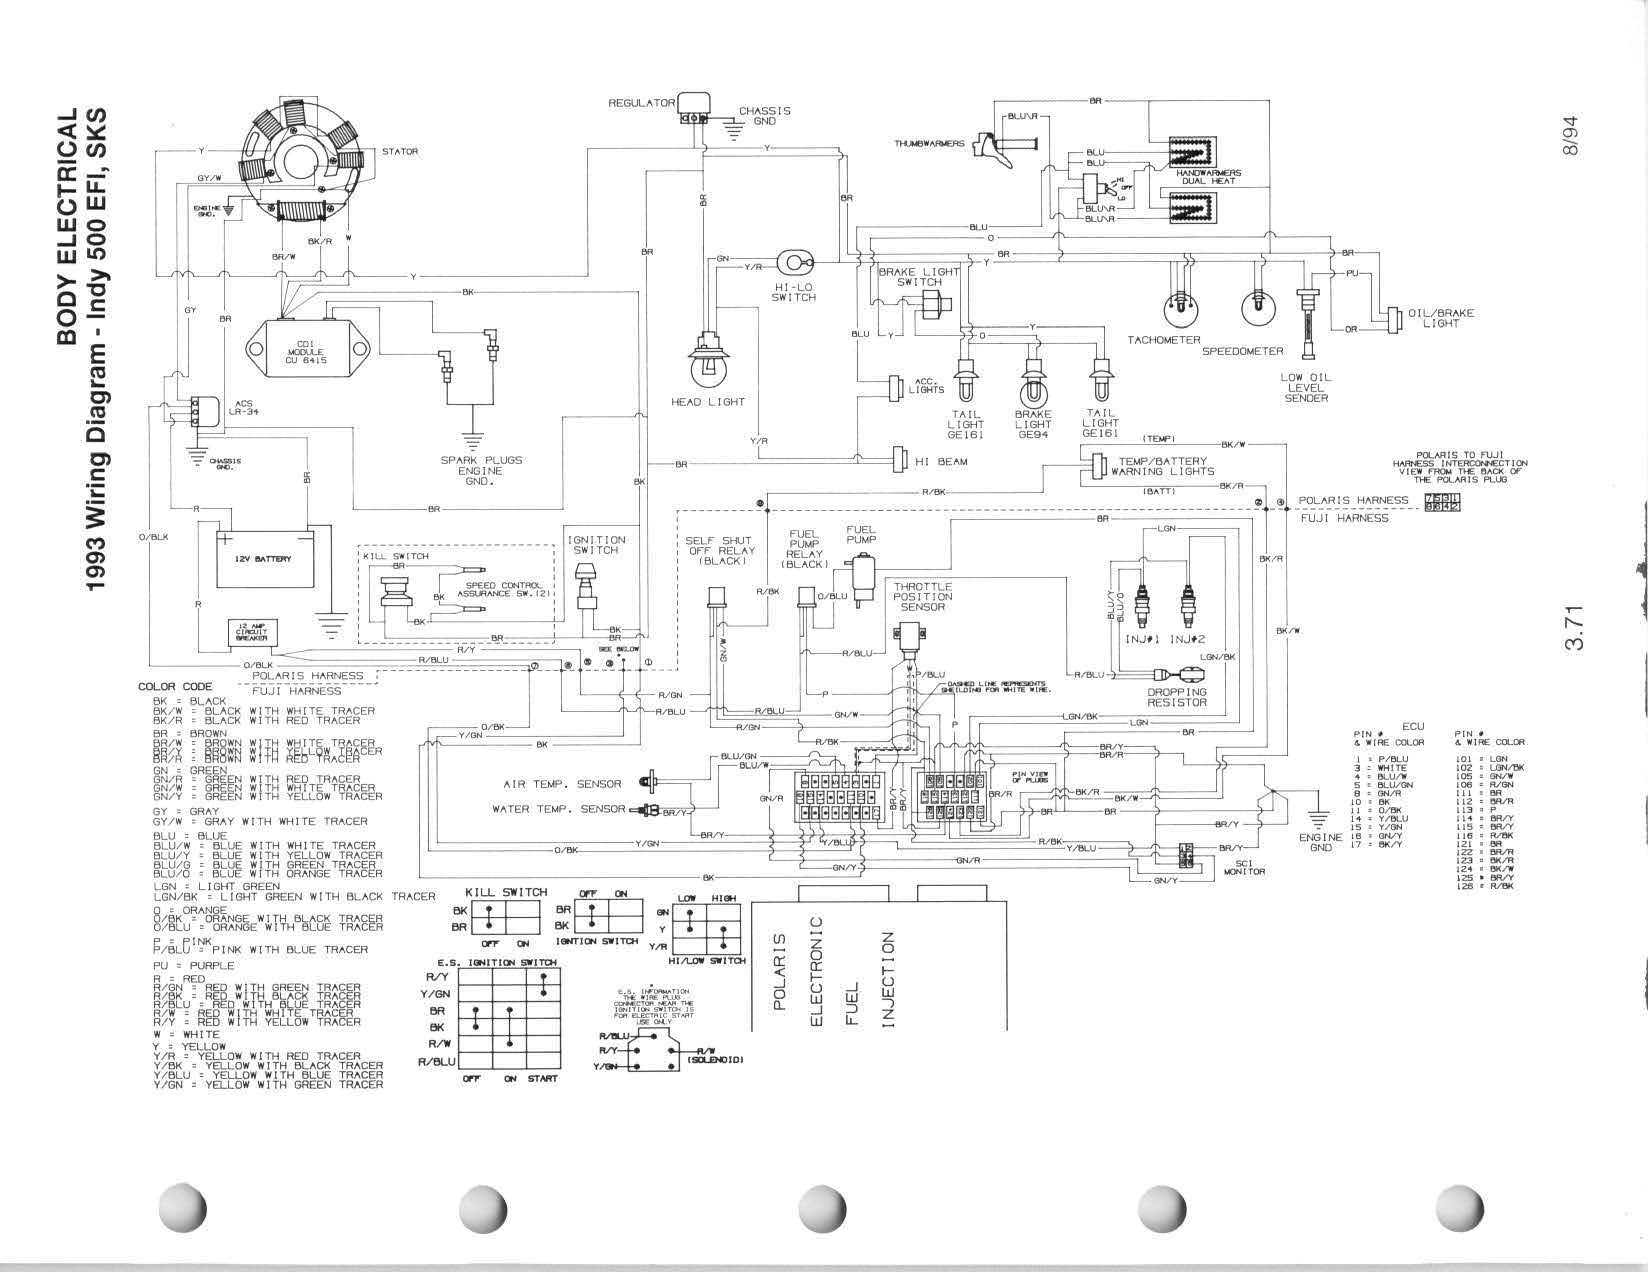 hight resolution of polaris 500 wiring diagram wiring diagram insidewiring diagram for polaris ranger 500 wiring diagram toolbox polaris